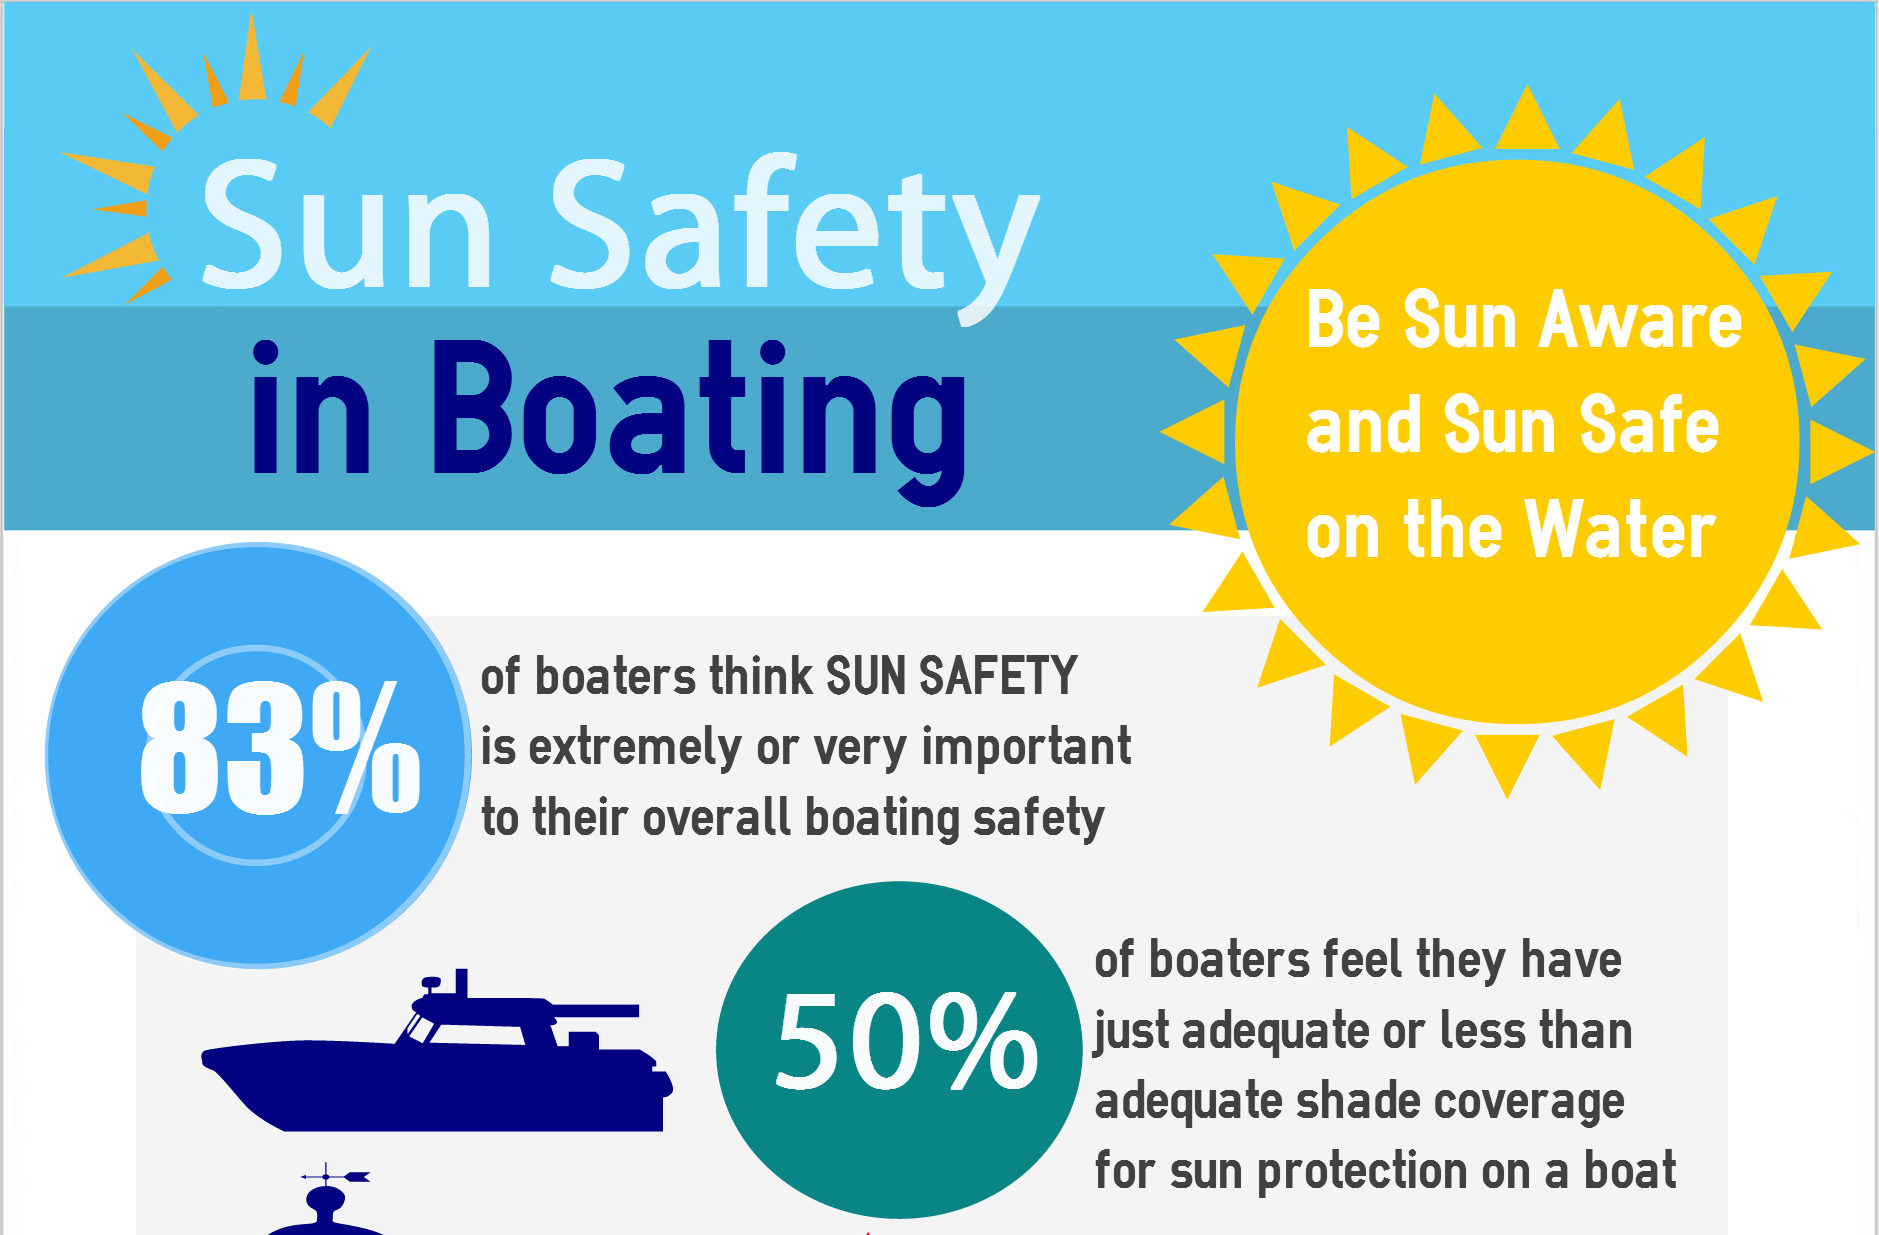 sun safety boating infographic